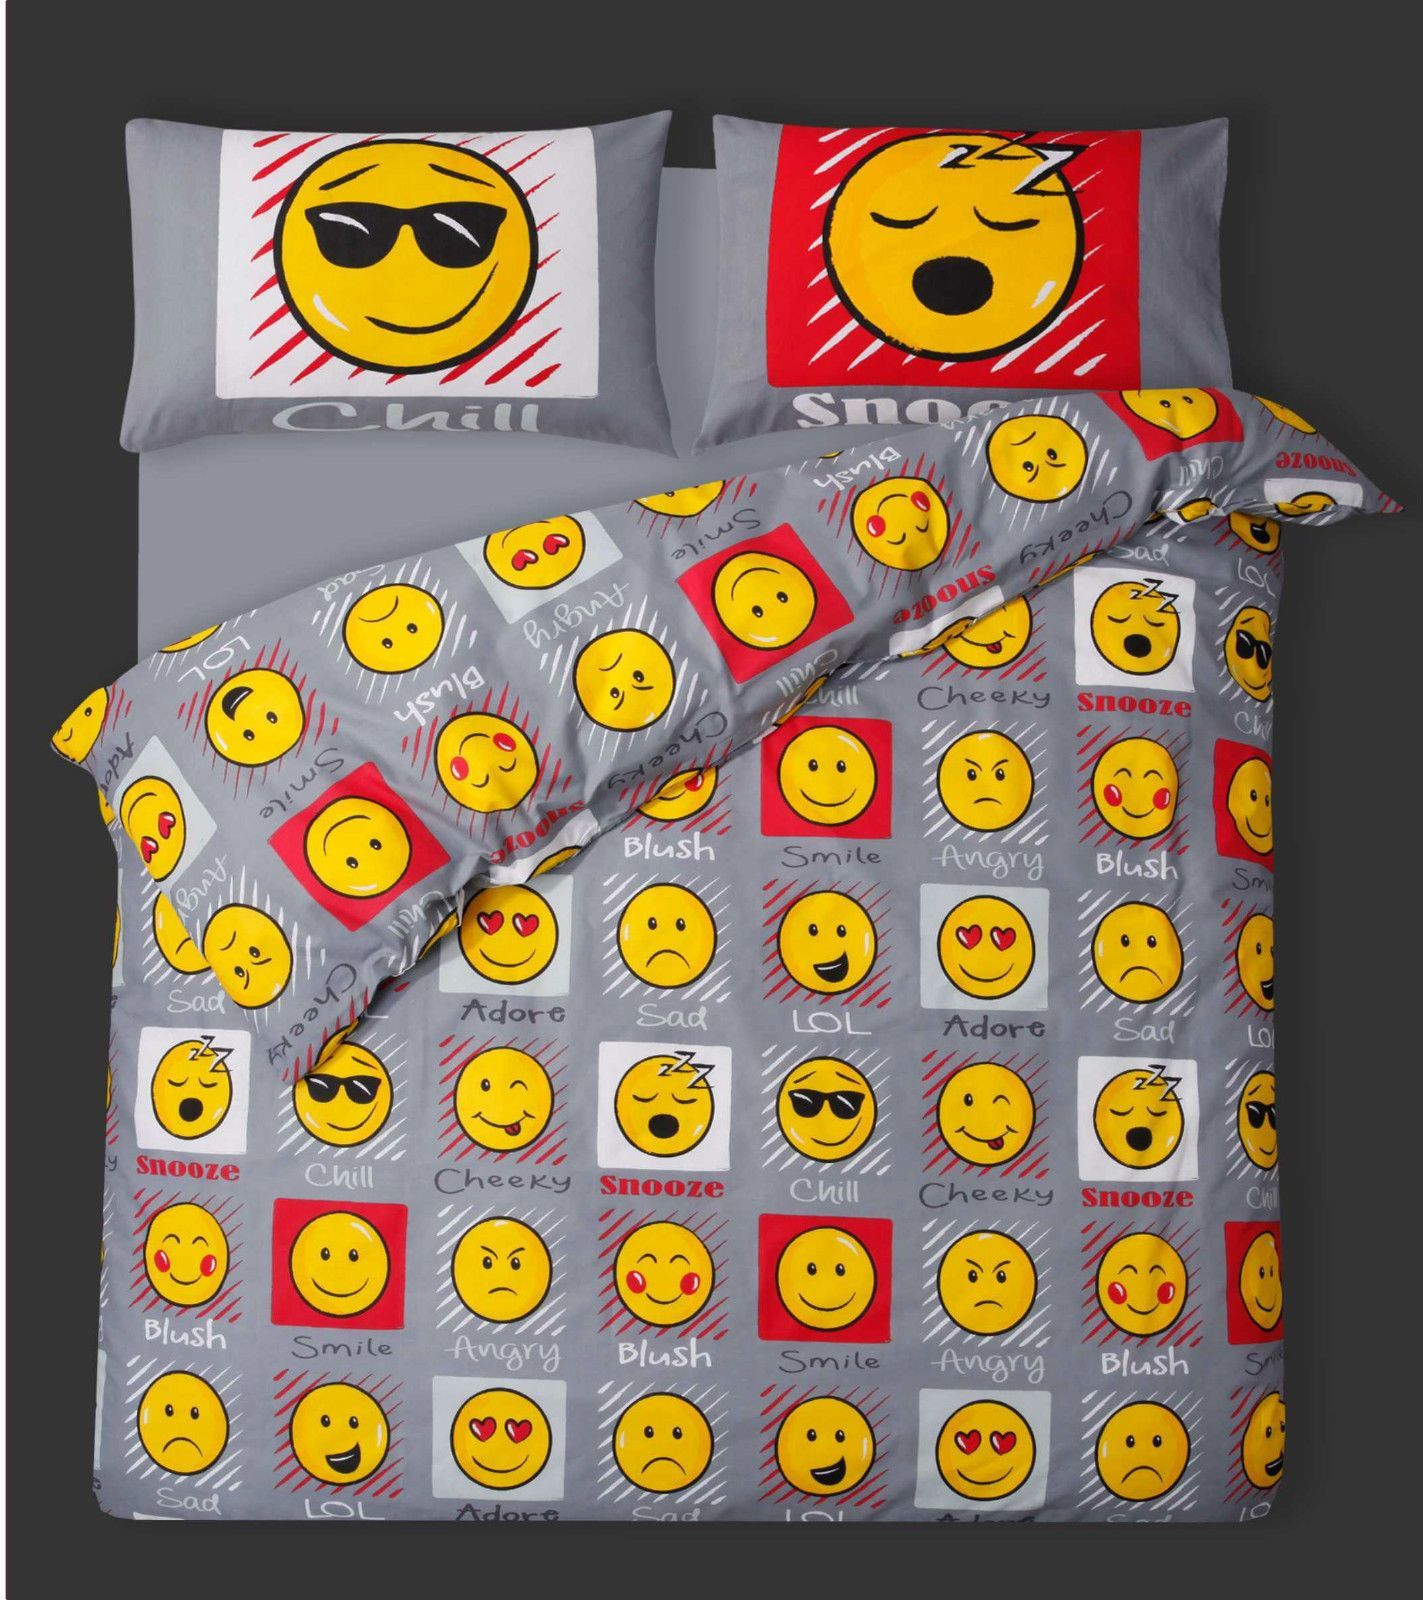 Emoji Smiley Emoticon Reversible Themed Design Bedding